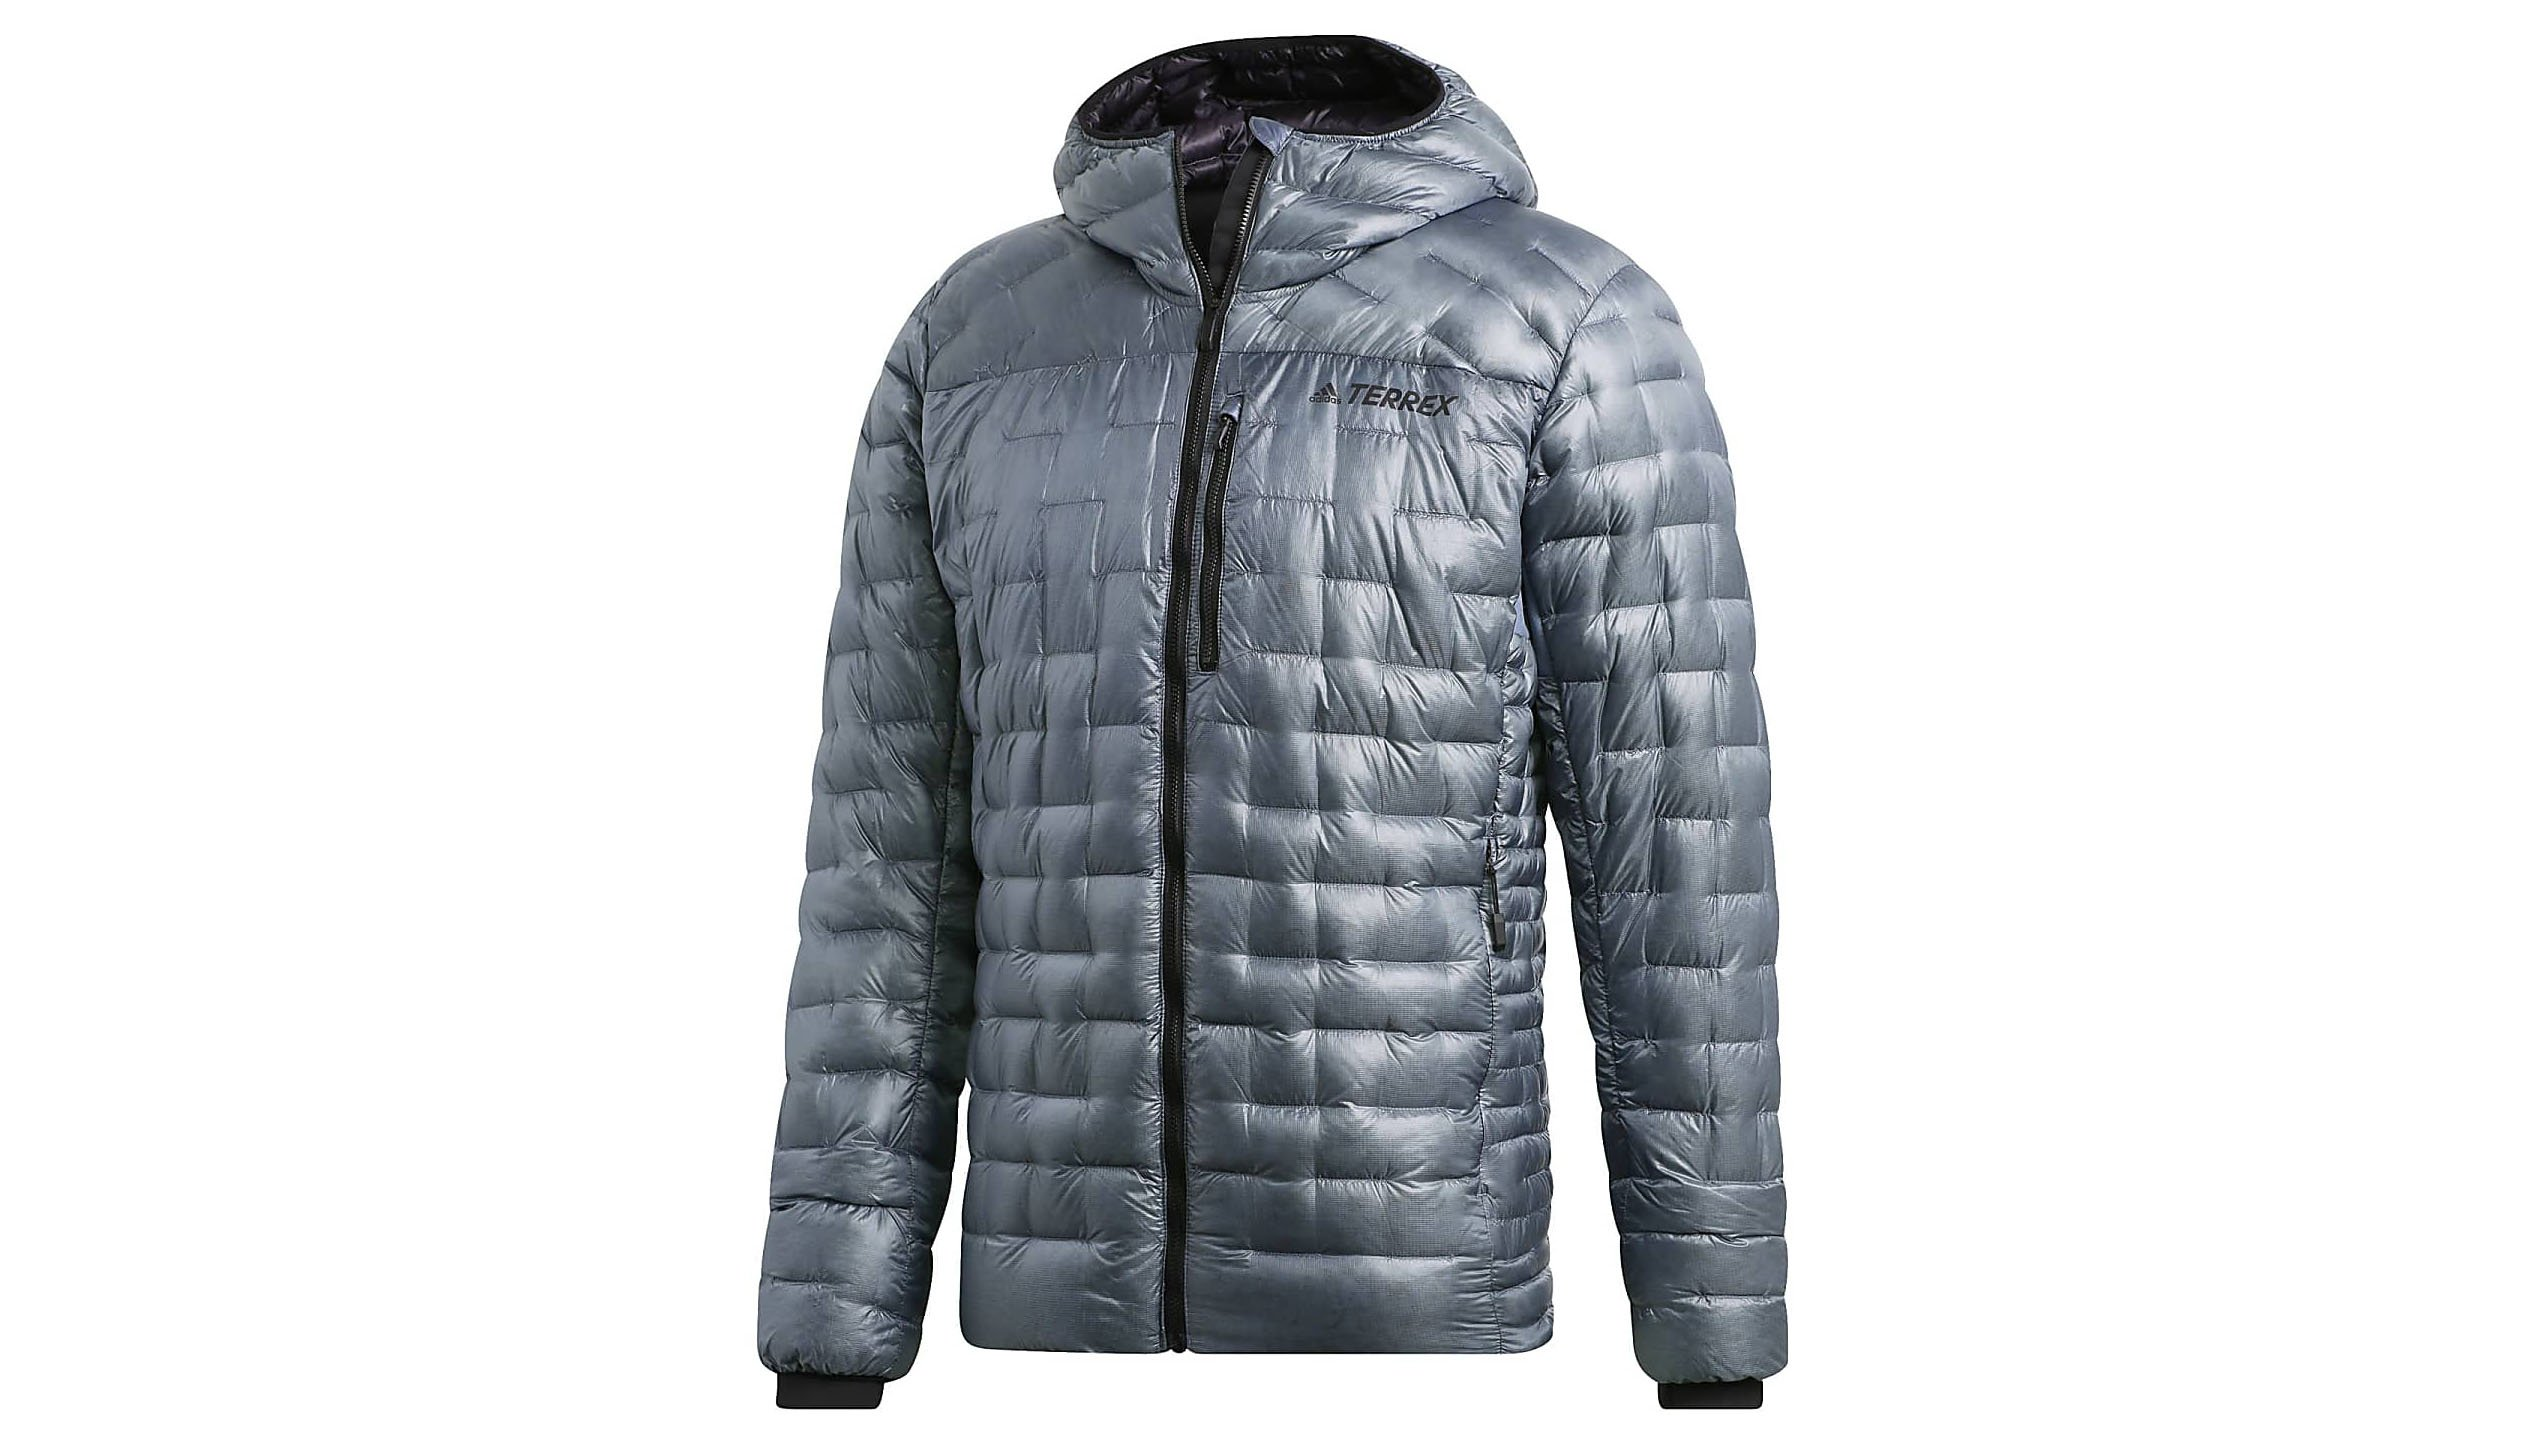 6636d9df9c2 The Adidas Terrex Climaheat jacket is a bold statement of a jacket: a  unique quilted pattern stands out from the crowd and unique colours put an  individual ...